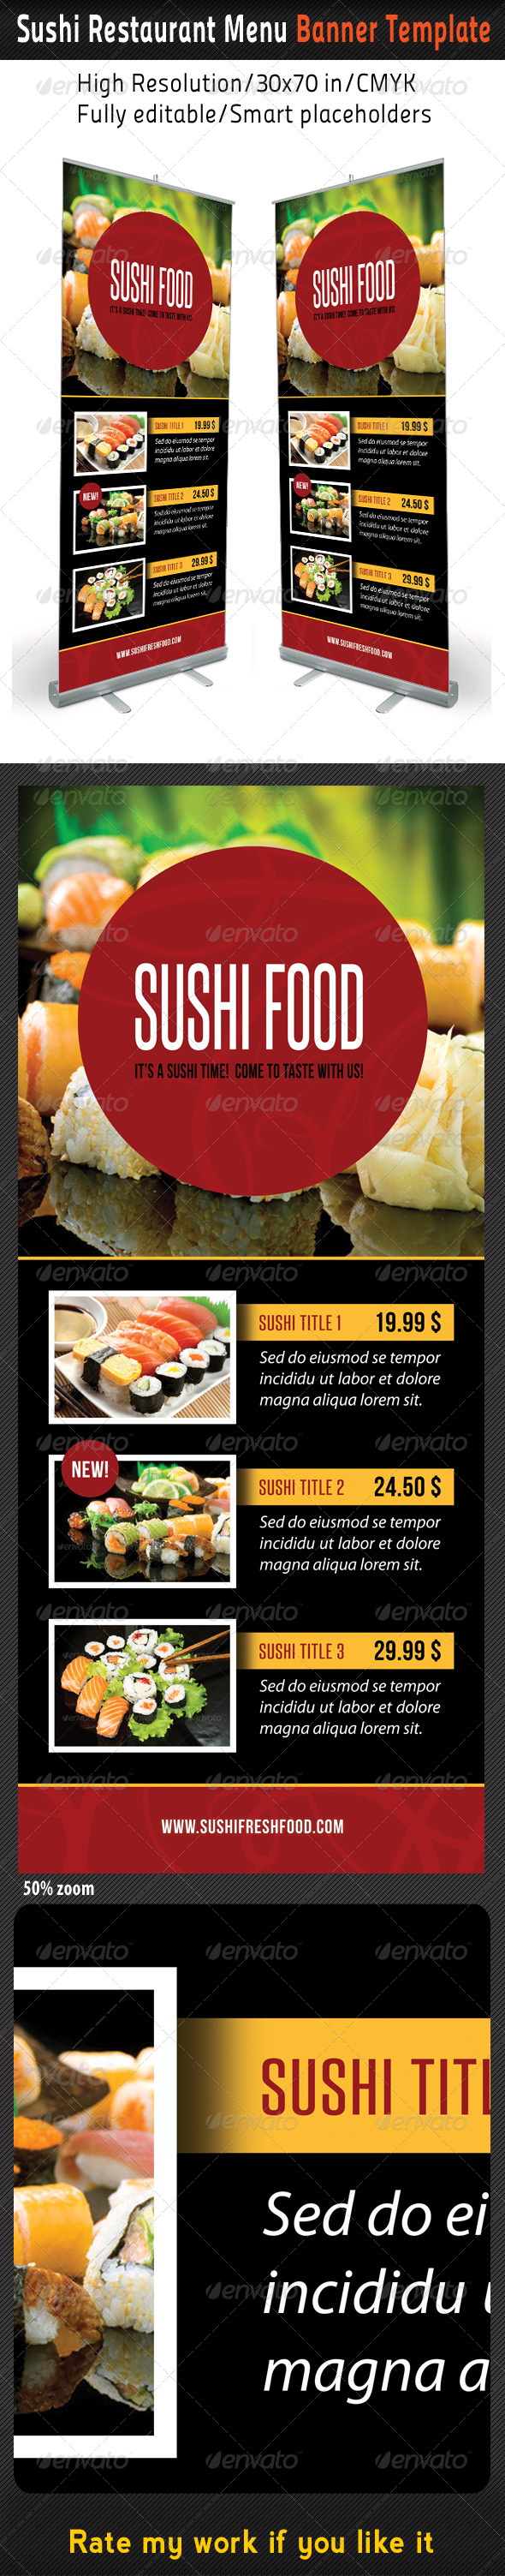 GraphicRiver Sushi Restaurant Menu Banner Template 02 8423220